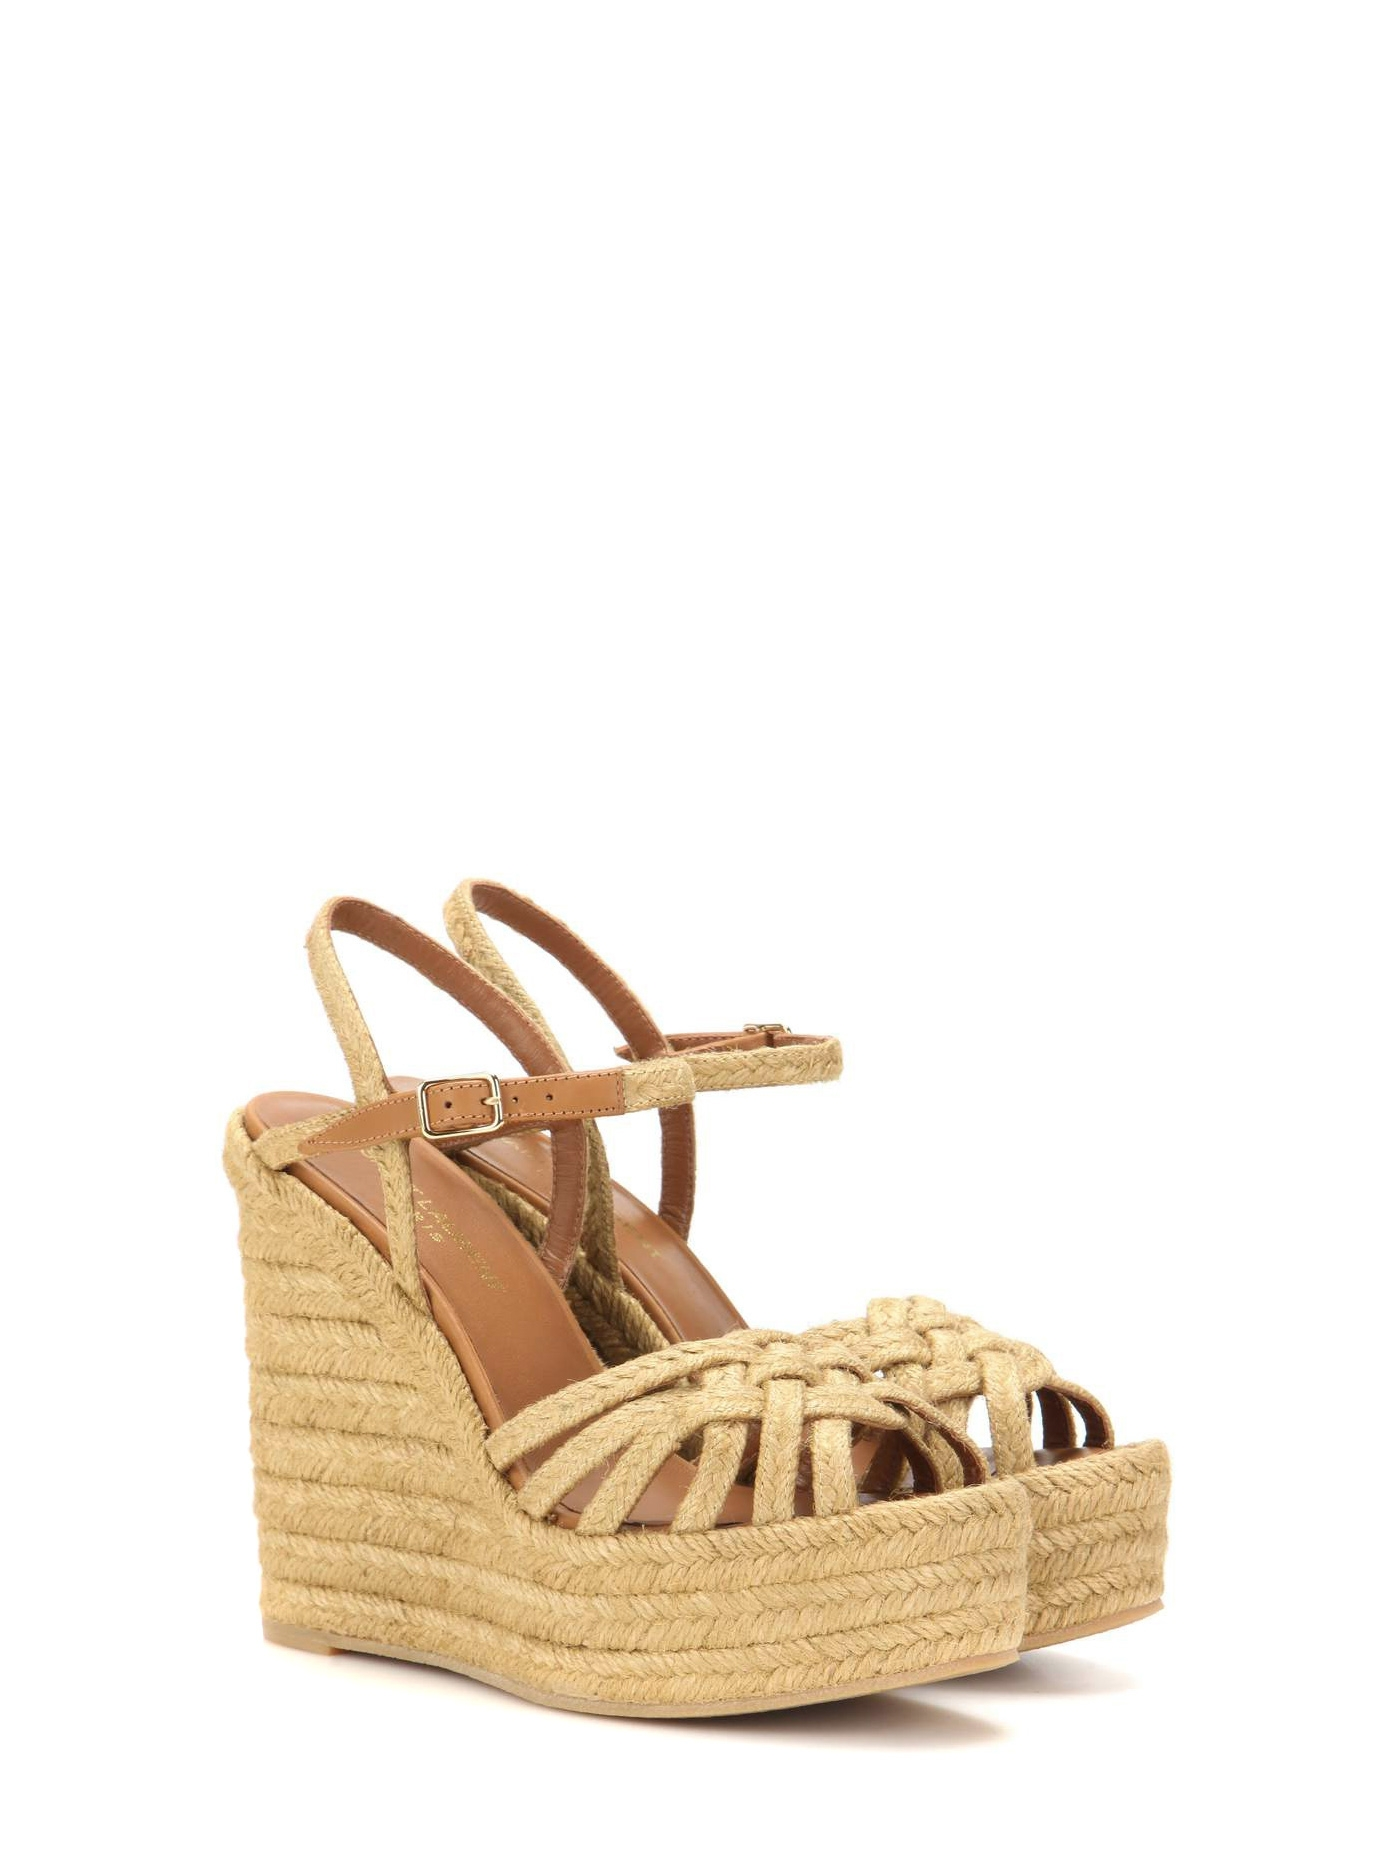 46a90d4e2d72 CANDY Beige espadrilles wedge sandals with ankle strap Retail price $895  Size 40